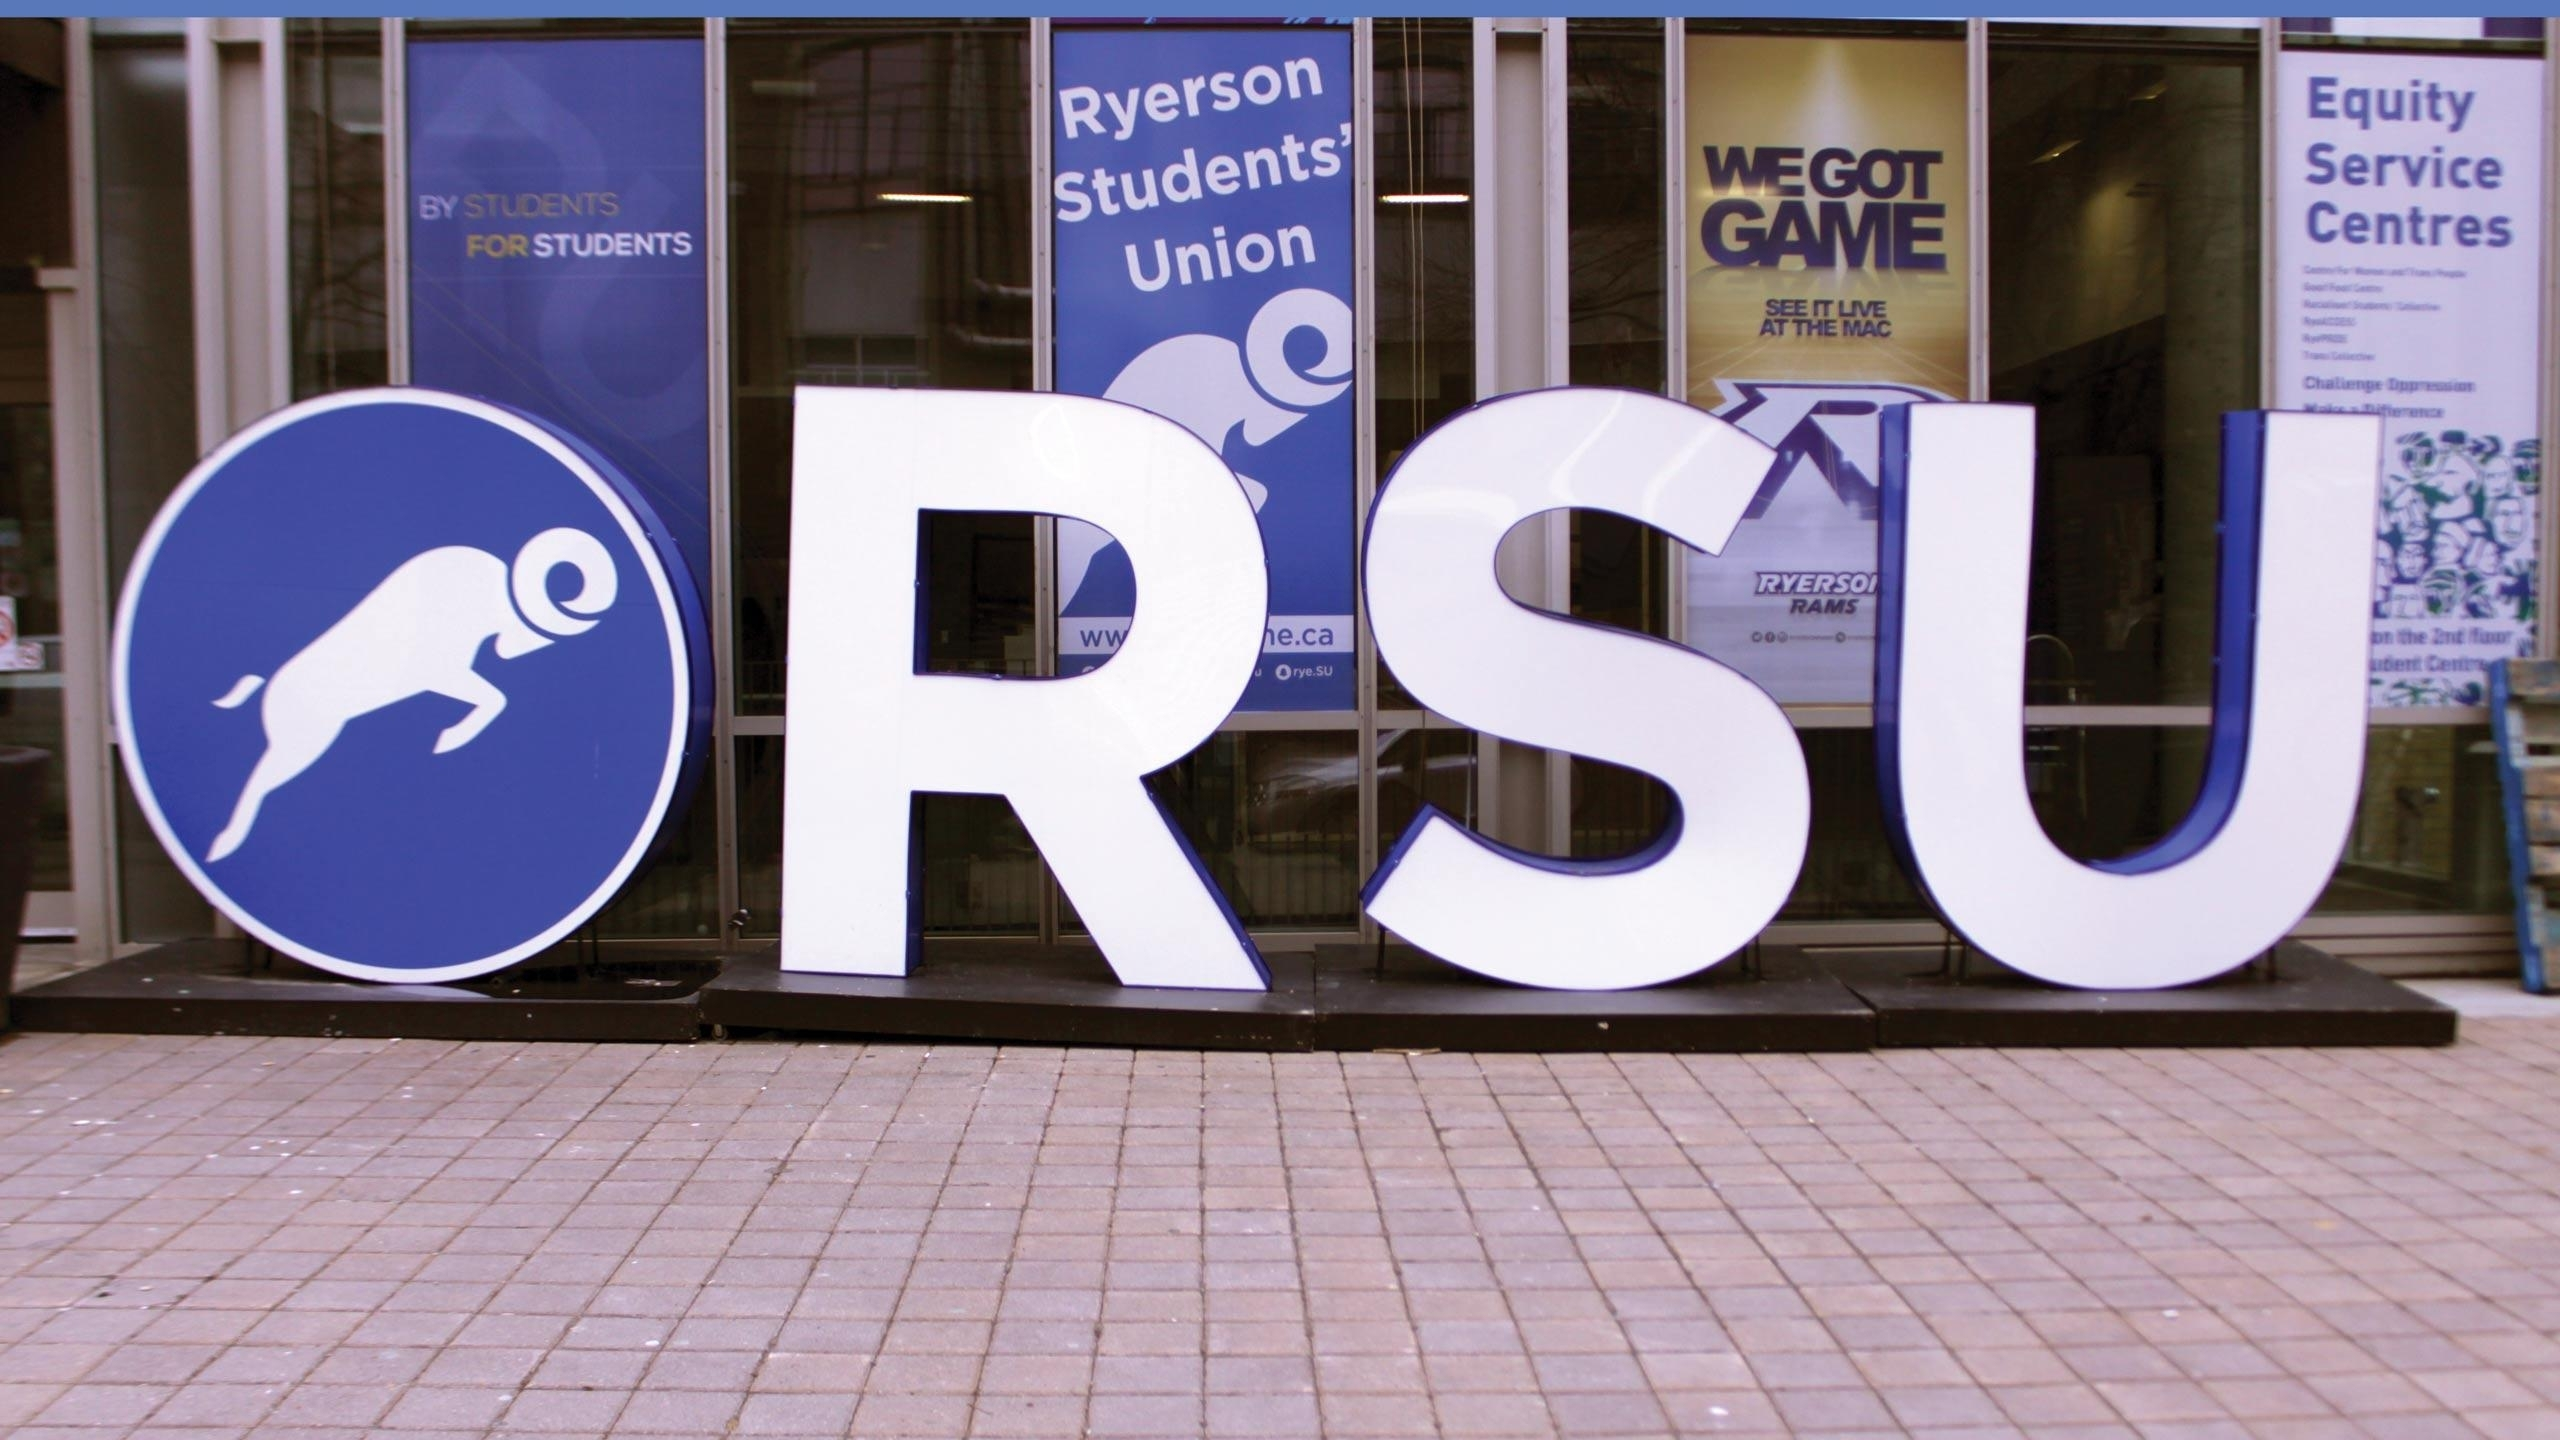 Rsu 2019-20 Candidate Profiles – The Eyeopener with regard to Ryerson Reading Week 2019-2020